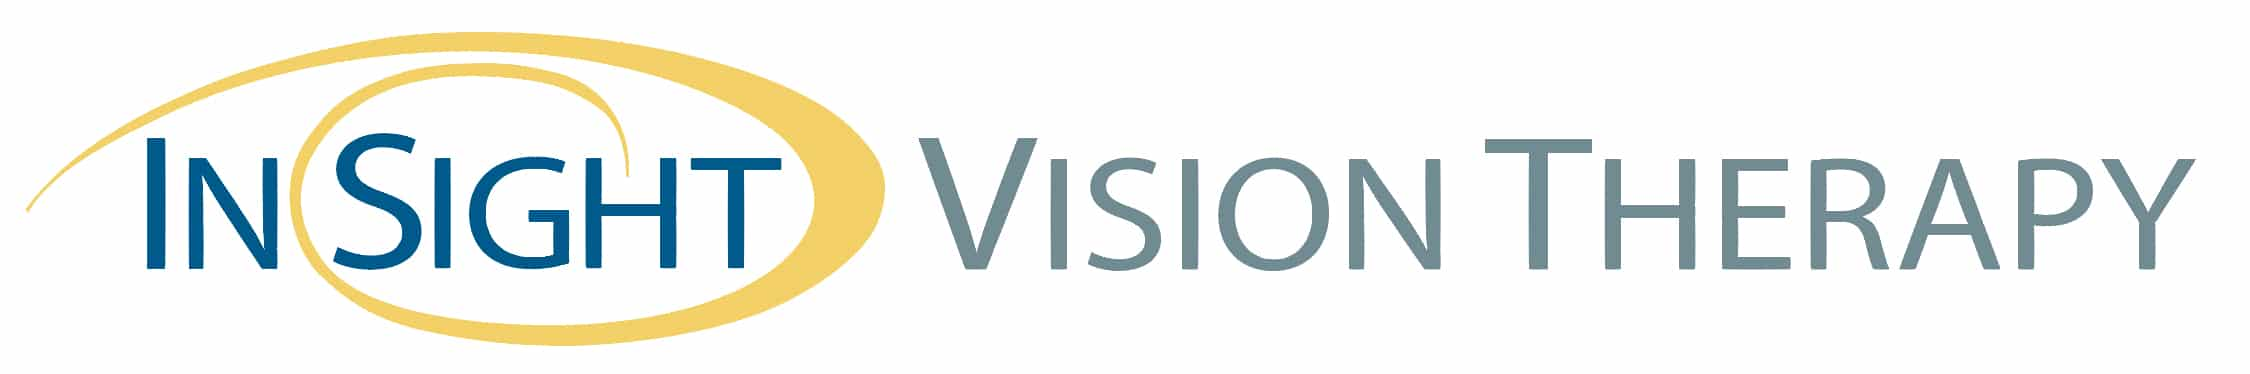 Insight Vision Therapy Logo